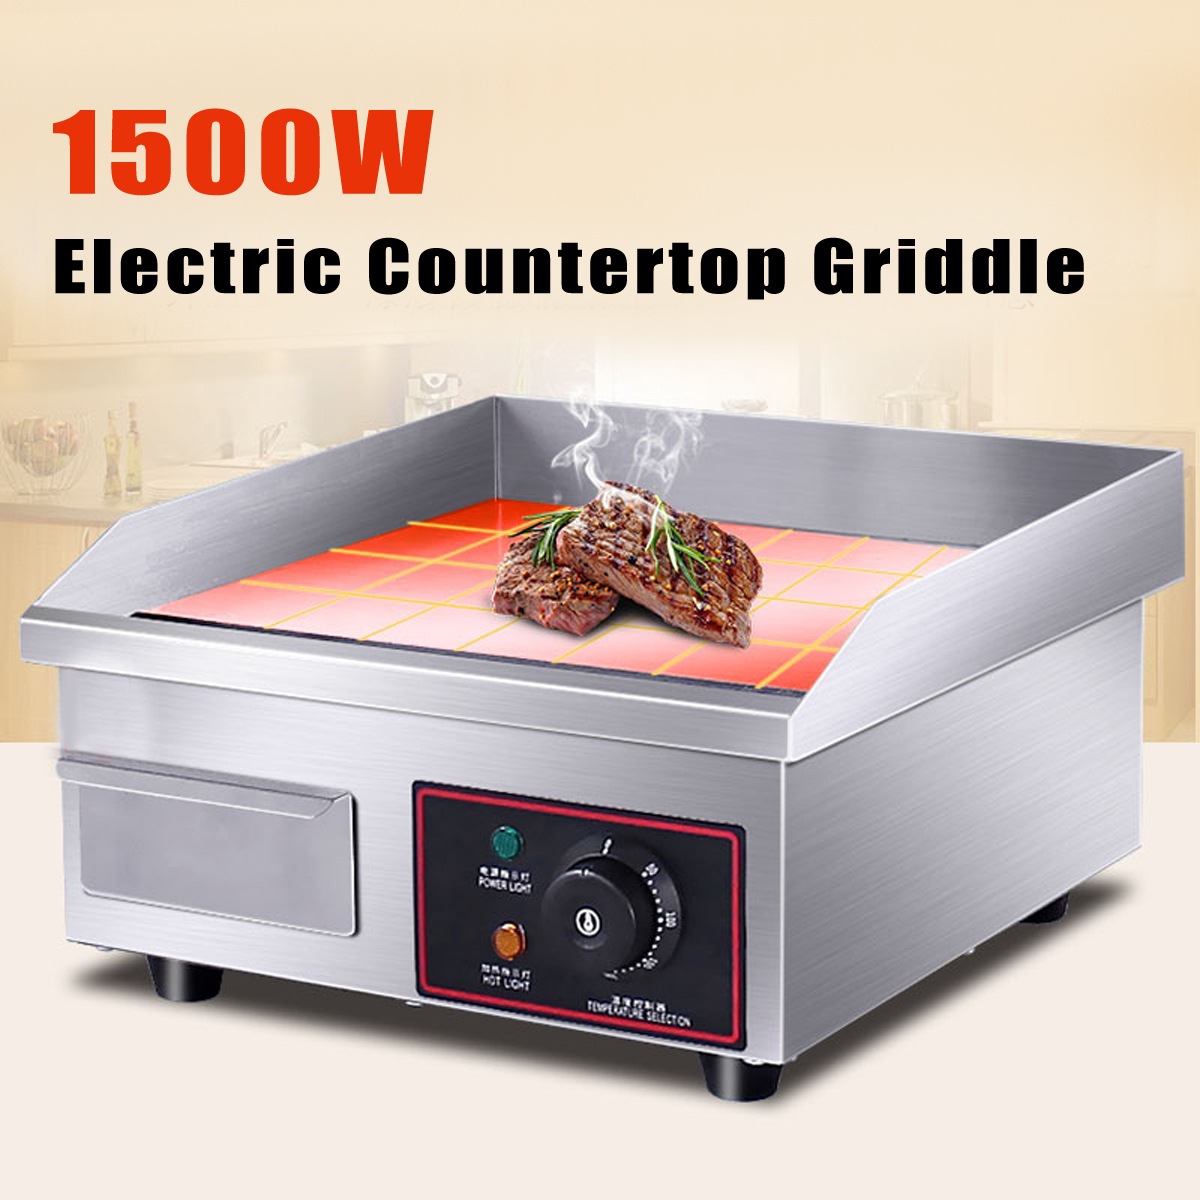 все цены на 1500W Electric Countertop Griddle Electric Heating Griddle Stainless Steel Flat Top Commercial Restaurant Grill BBQ 220V онлайн